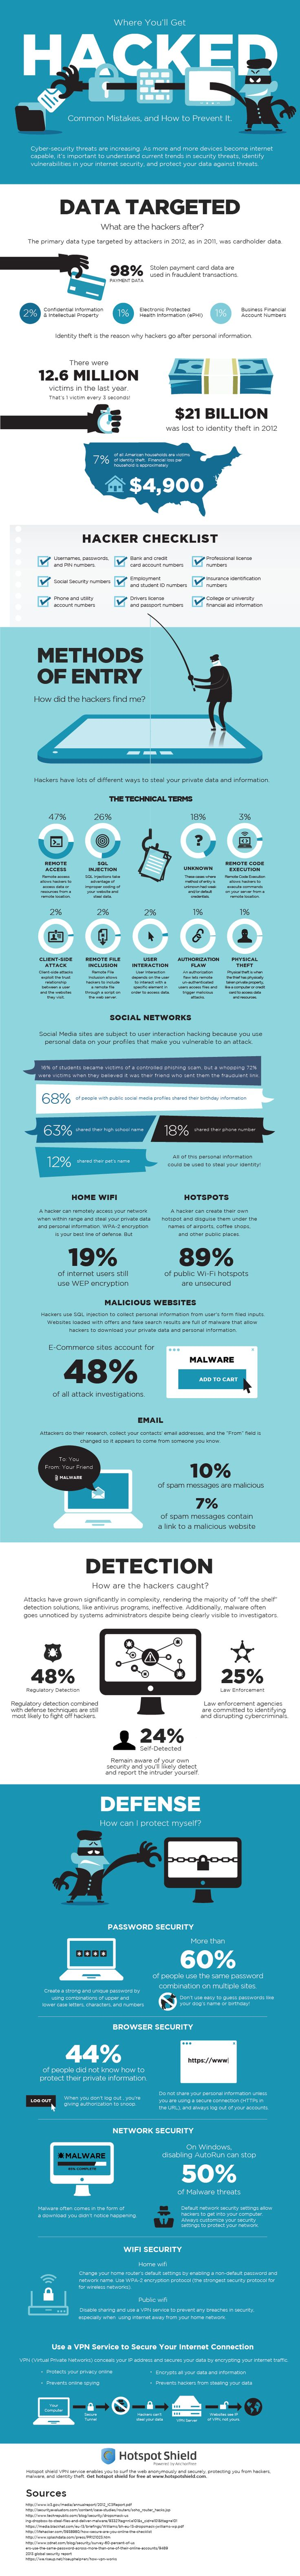 how to protect yourself from hackers 52058392195ca Tips for Protecting Yourself from Hackers | Infographic